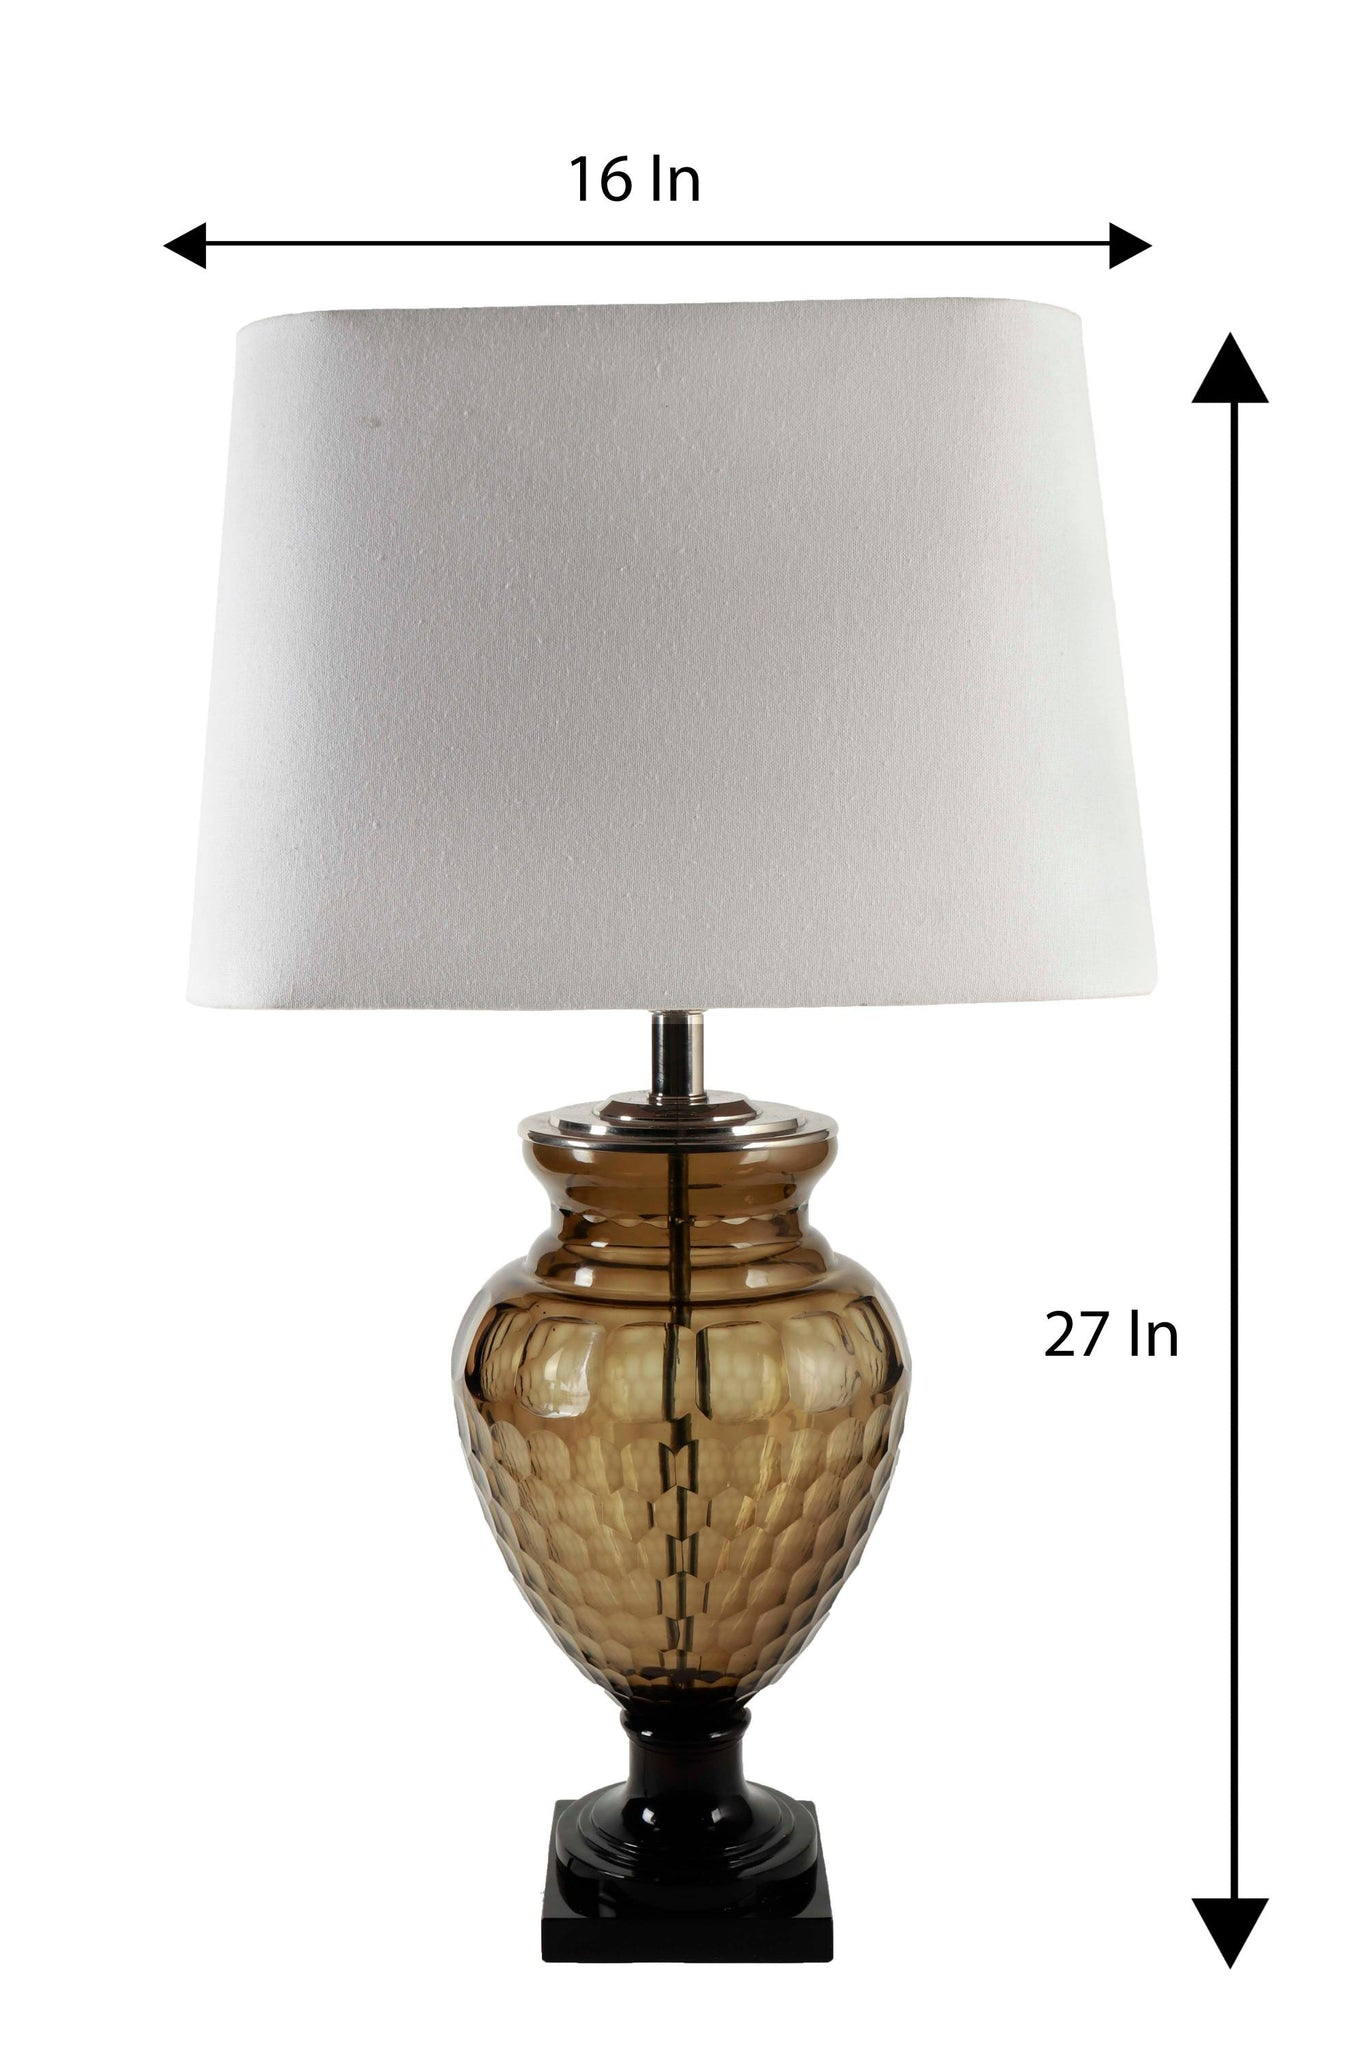 Buy Strawberry Drop Glass Table Lamp At Very Best Price From Grated Ginger Grated Ginger India